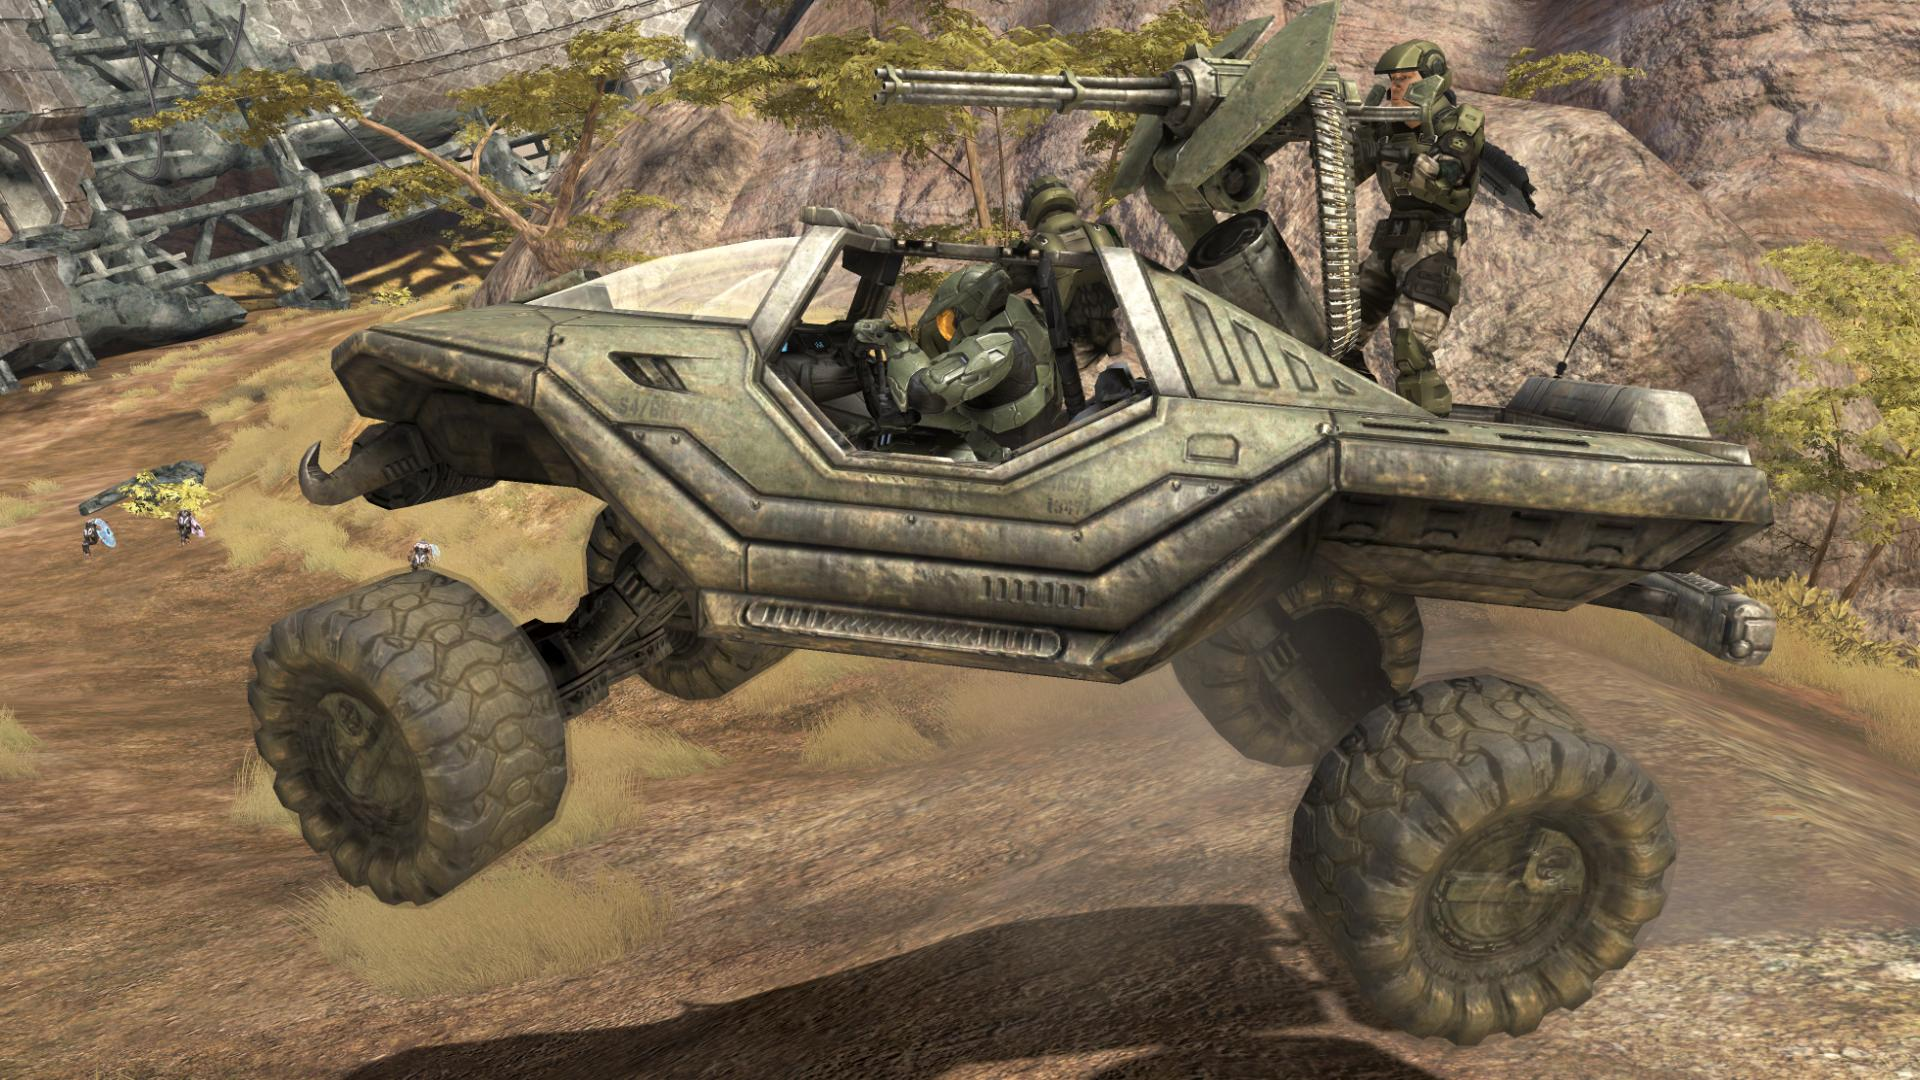 1521492942 7a94ef352c o Halo 3: Warthog Jumping the Dunes